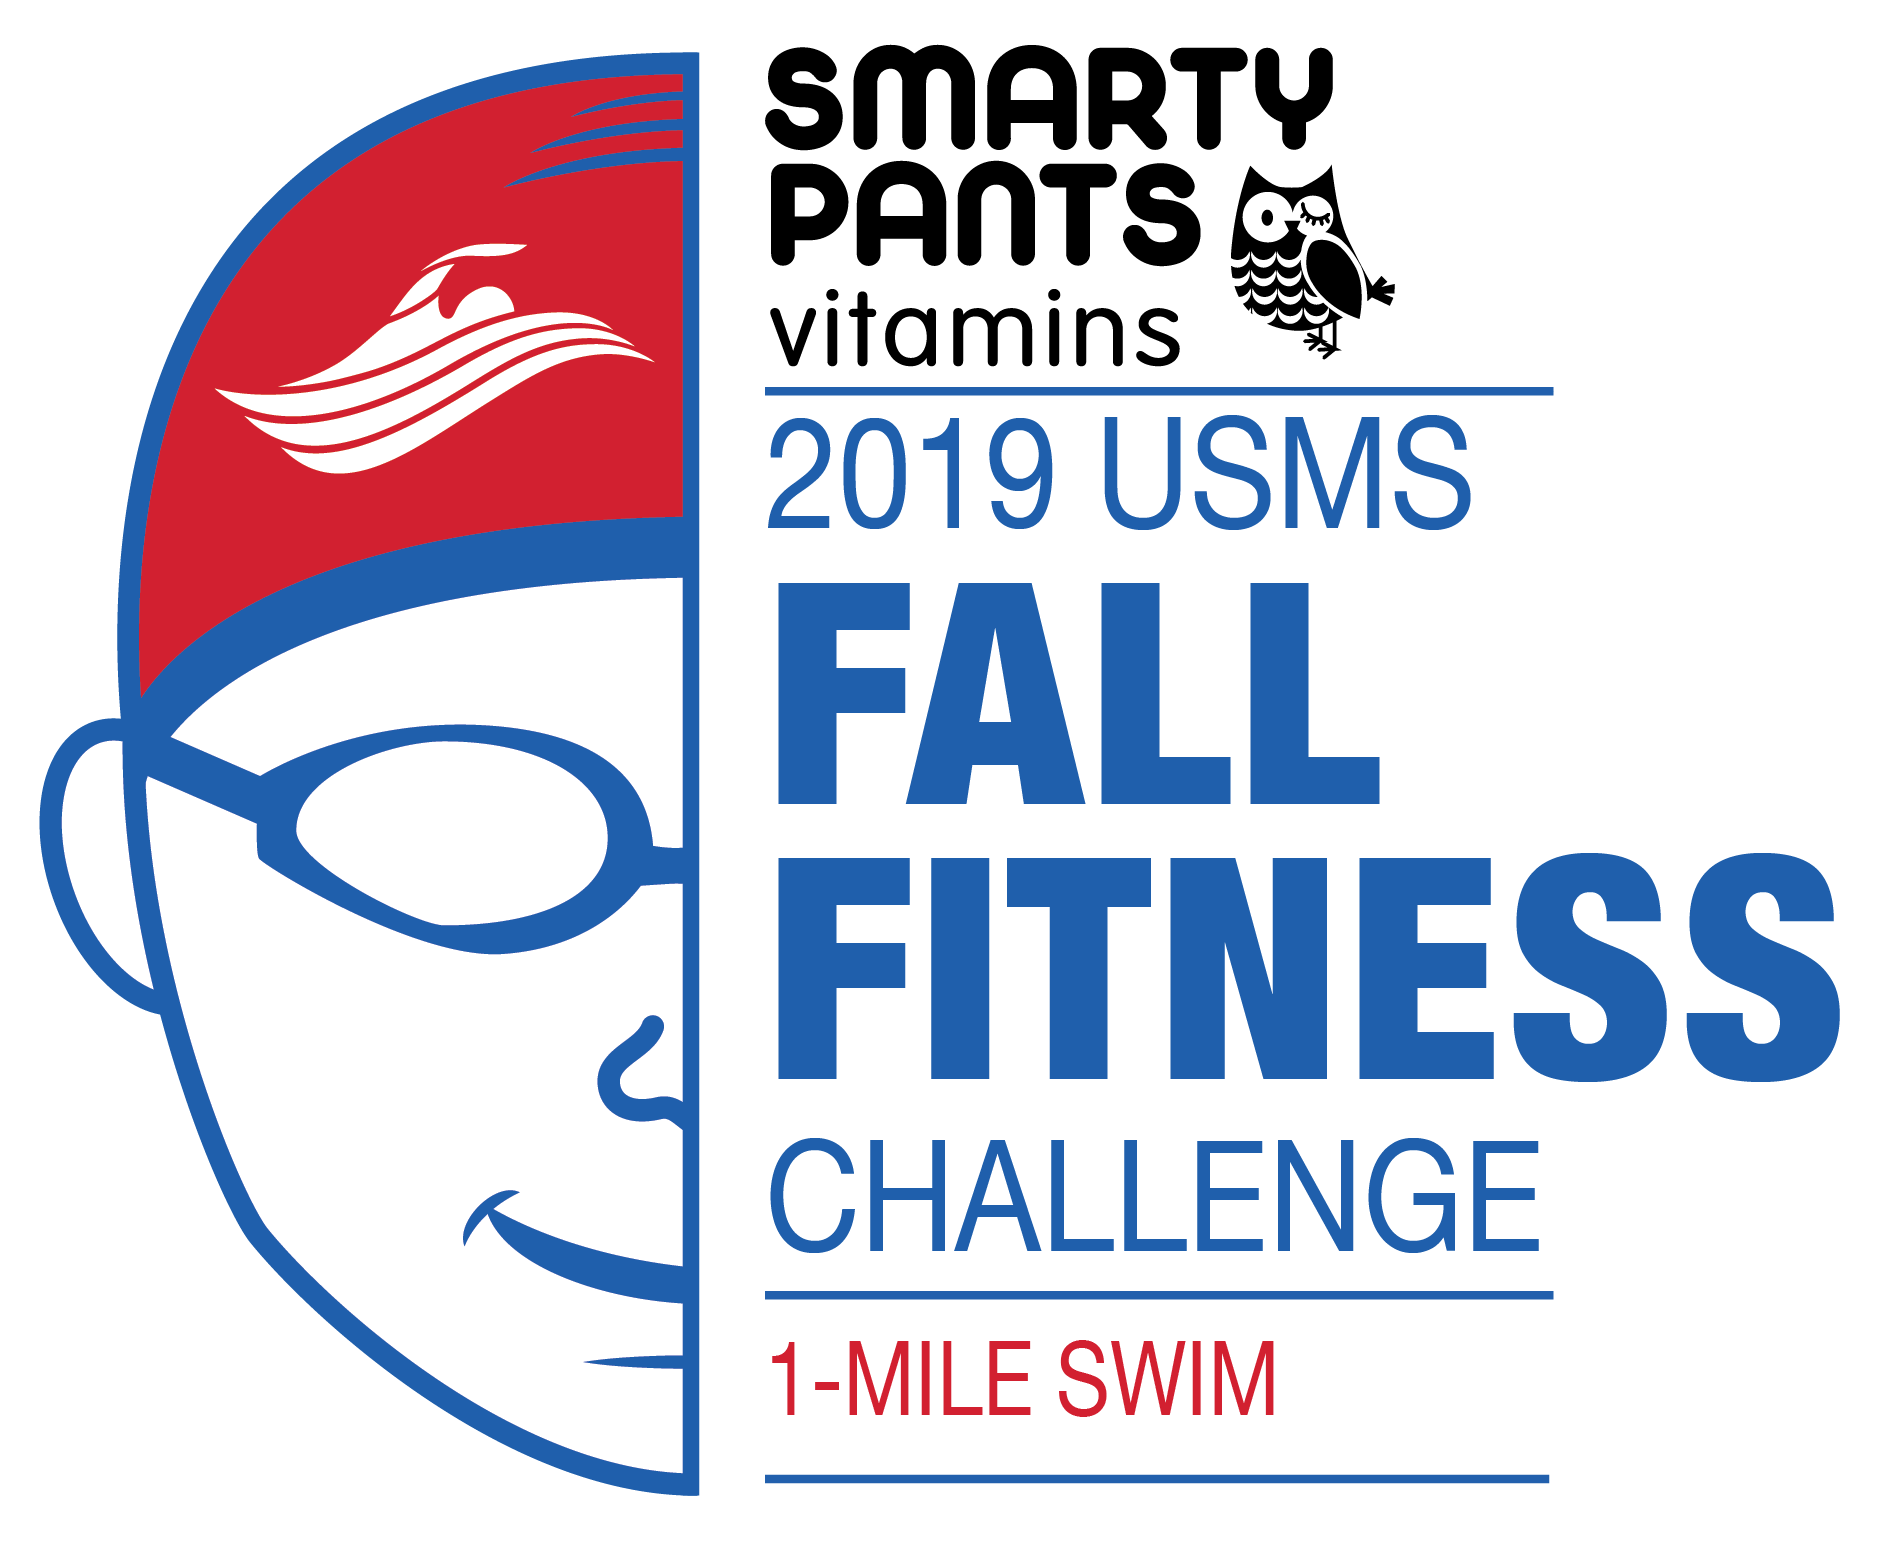 Smarty Pants 2019 USMS Fall Fitness Challenge 1-Mile Swim Color Logo